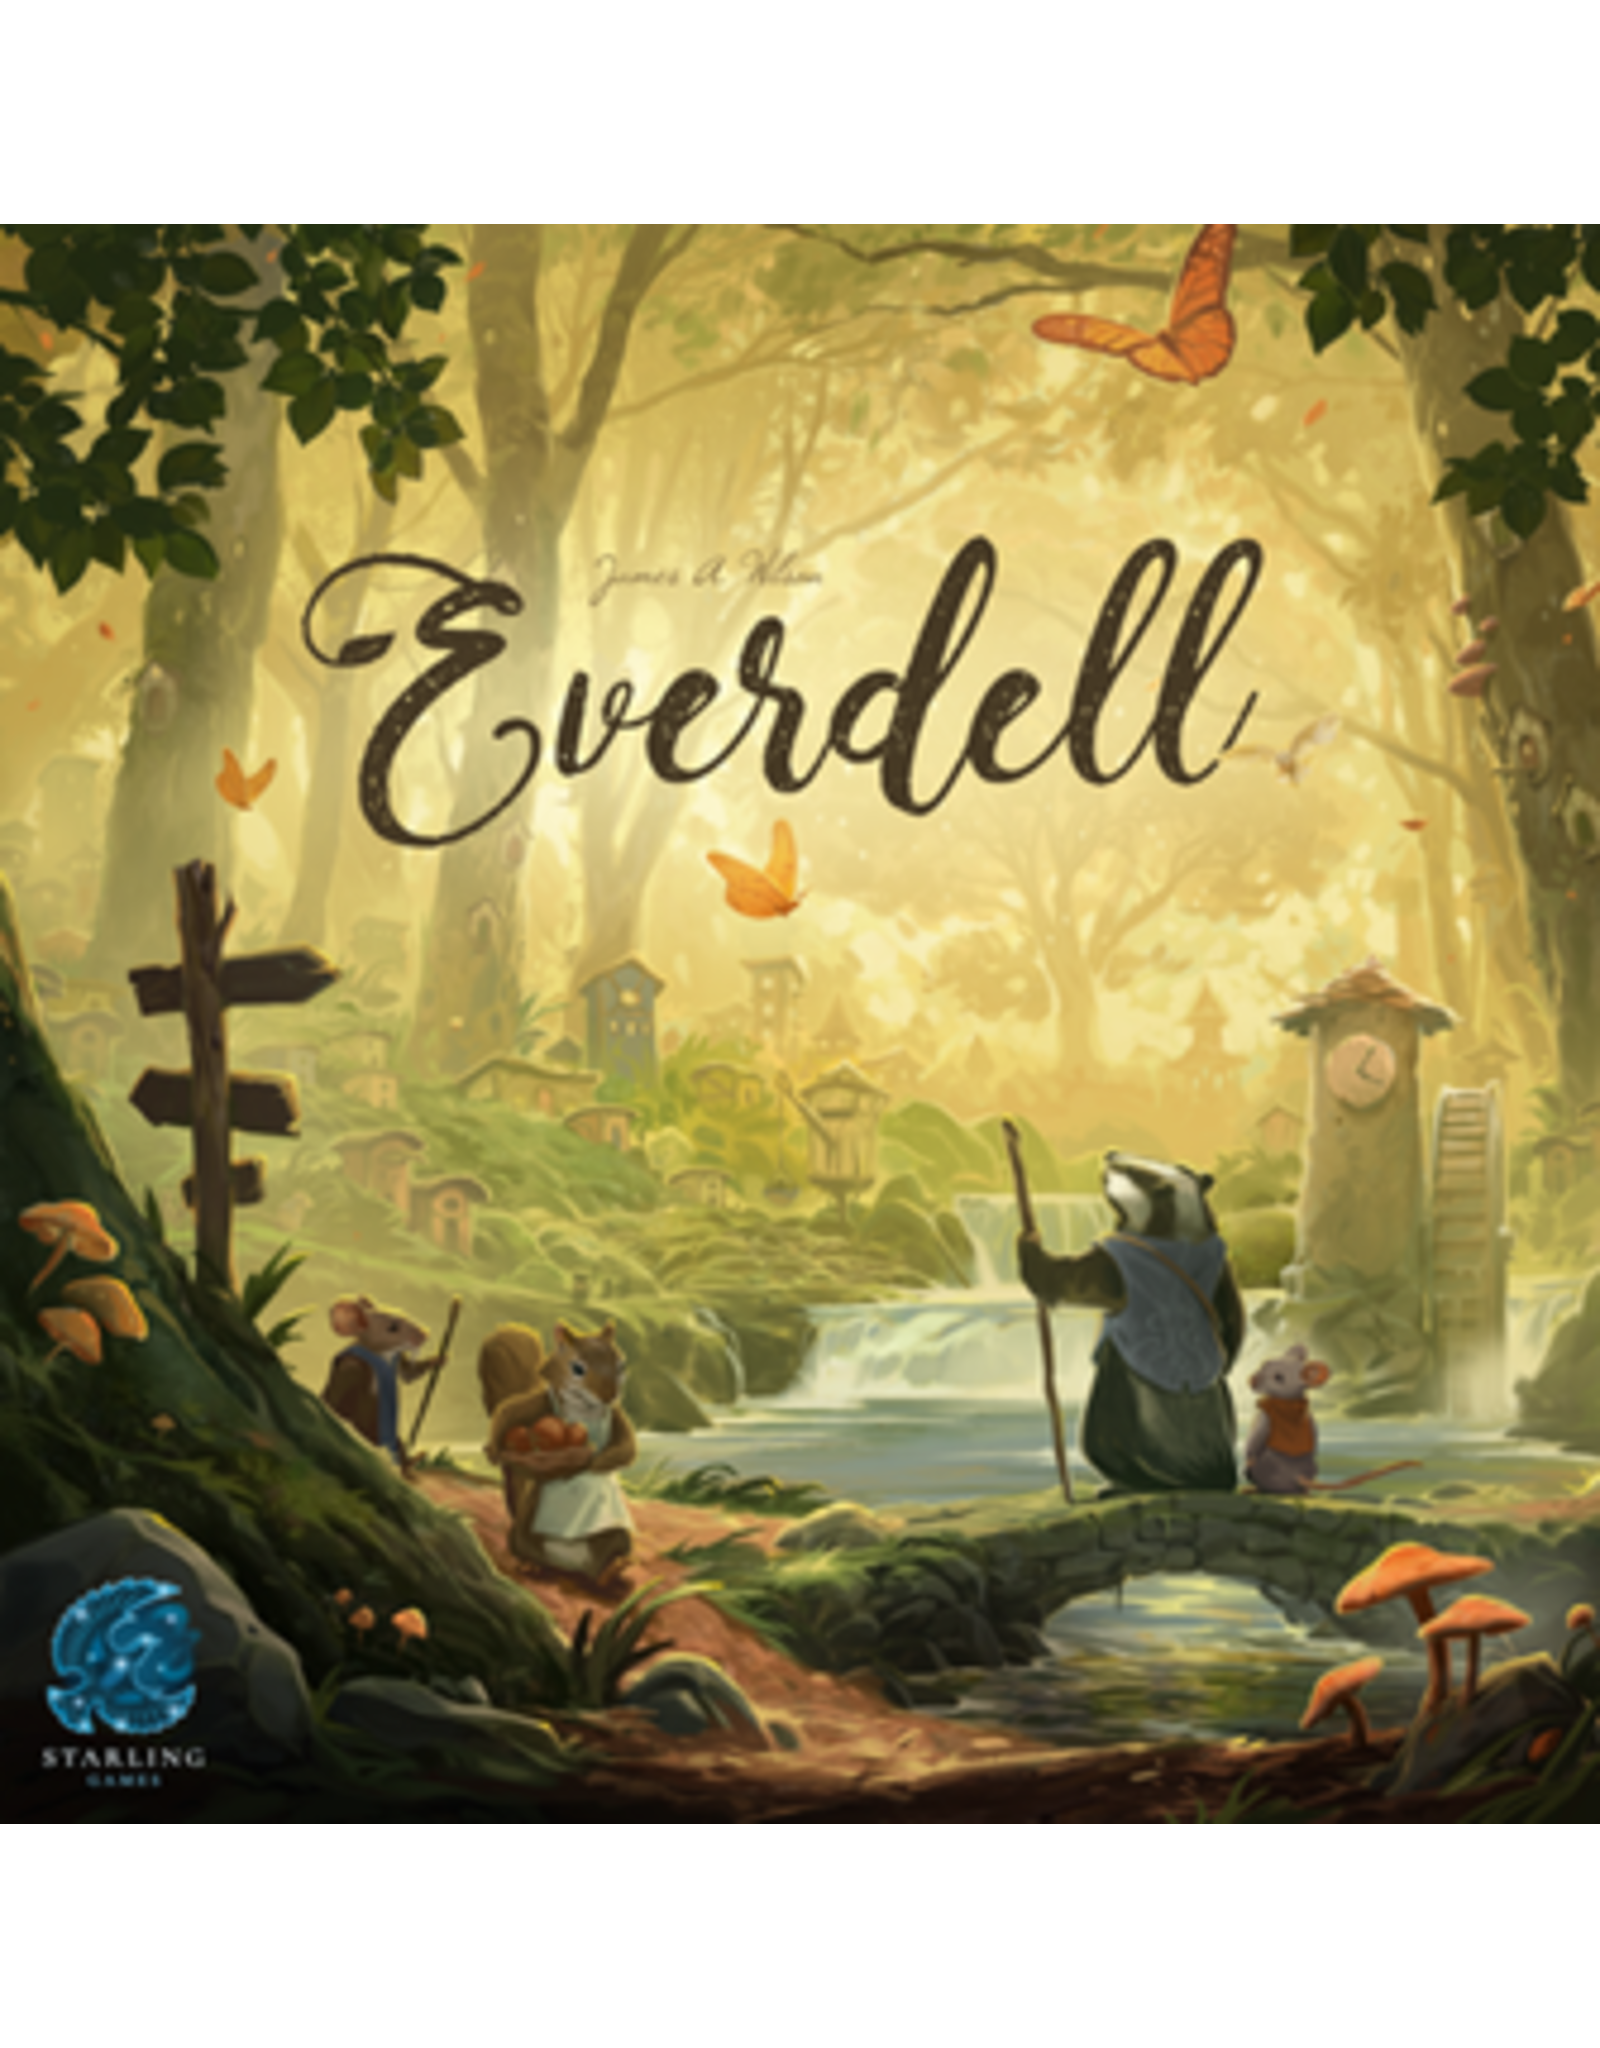 Starling Everdell